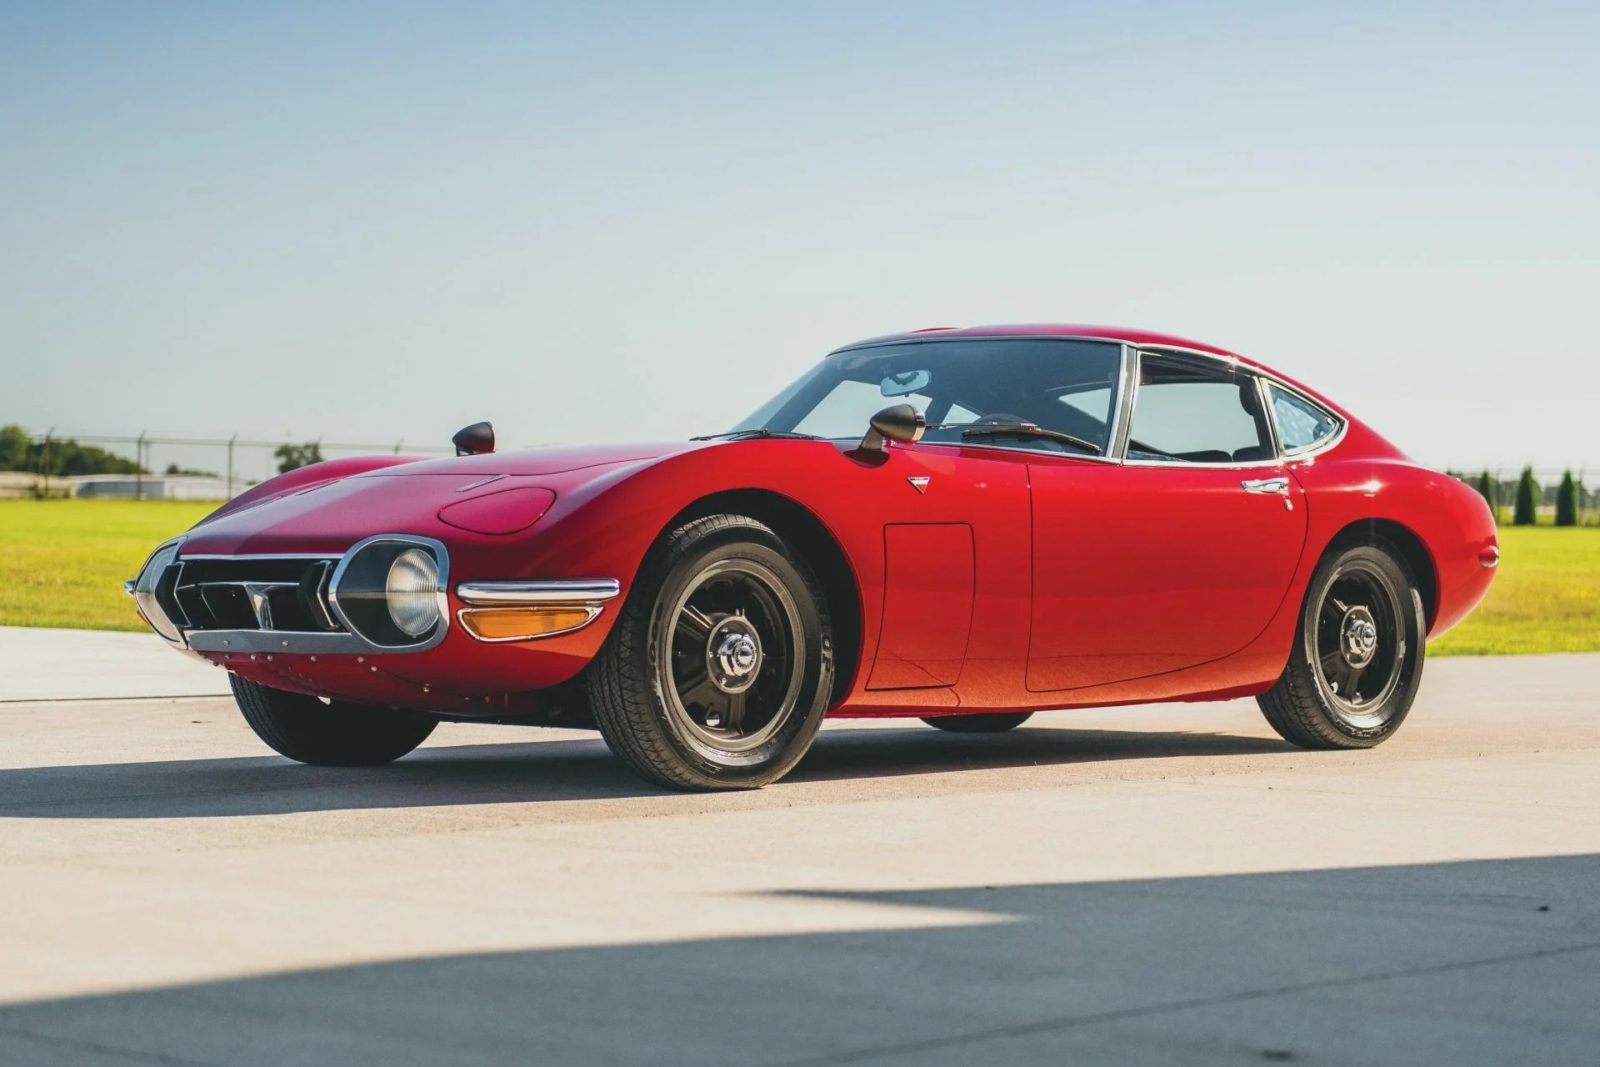 RM Sotheby's just sold a 53-year-old Toyota 2000GT coupe for a logic-defying $912,000 USD. Let's zoom in on the exotic and see what makes it so special.